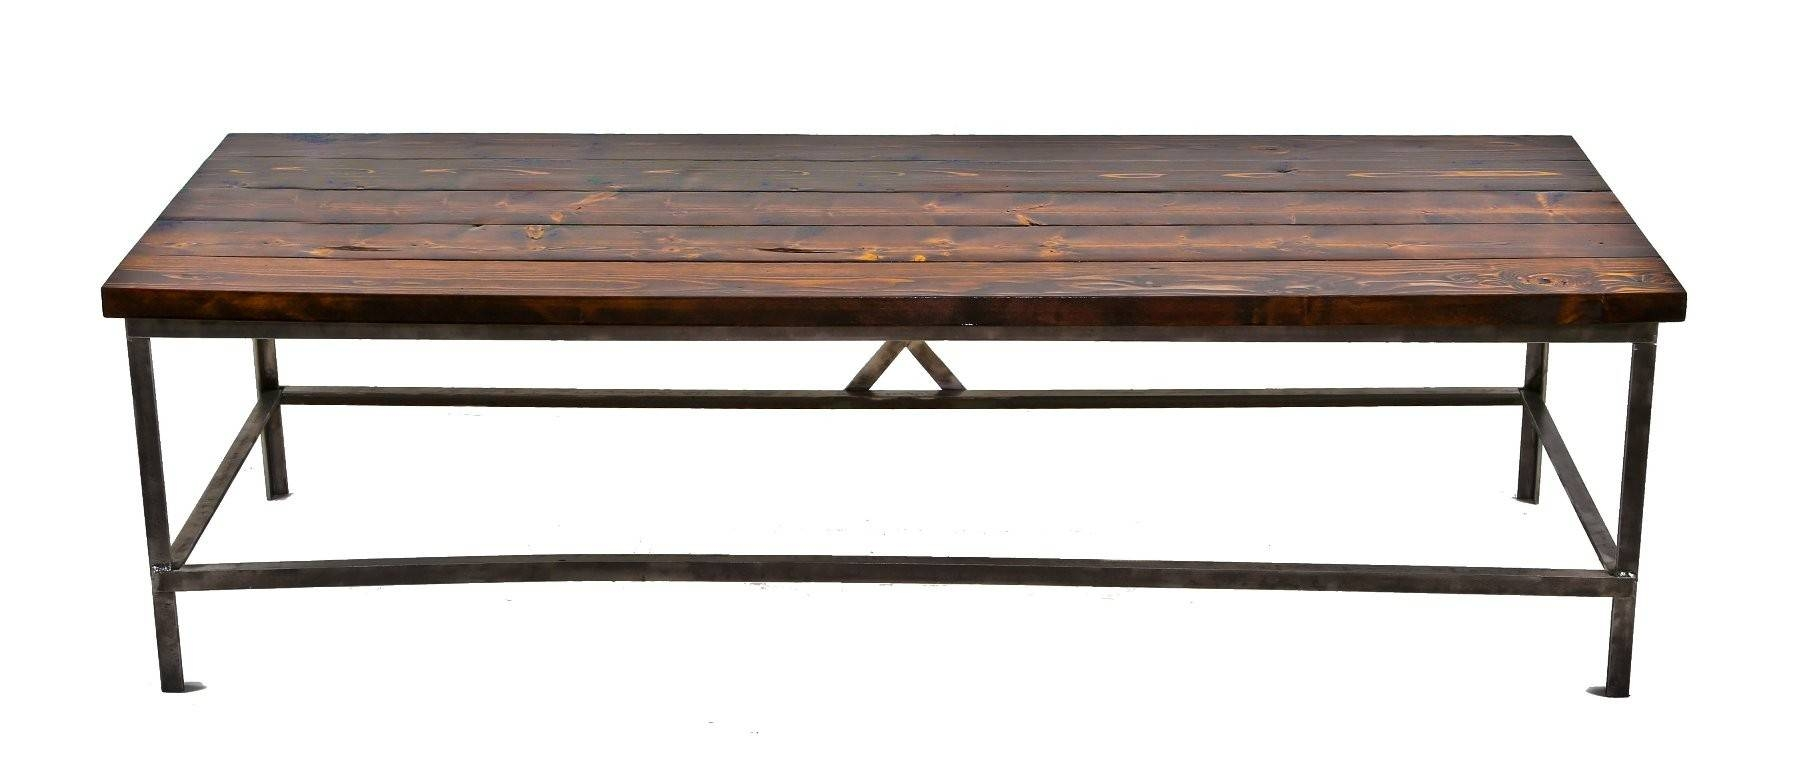 Long And Narrow C. 1940's Repurposed American Industrial Brushed within Long Coffee Tables (Image 9 of 15)